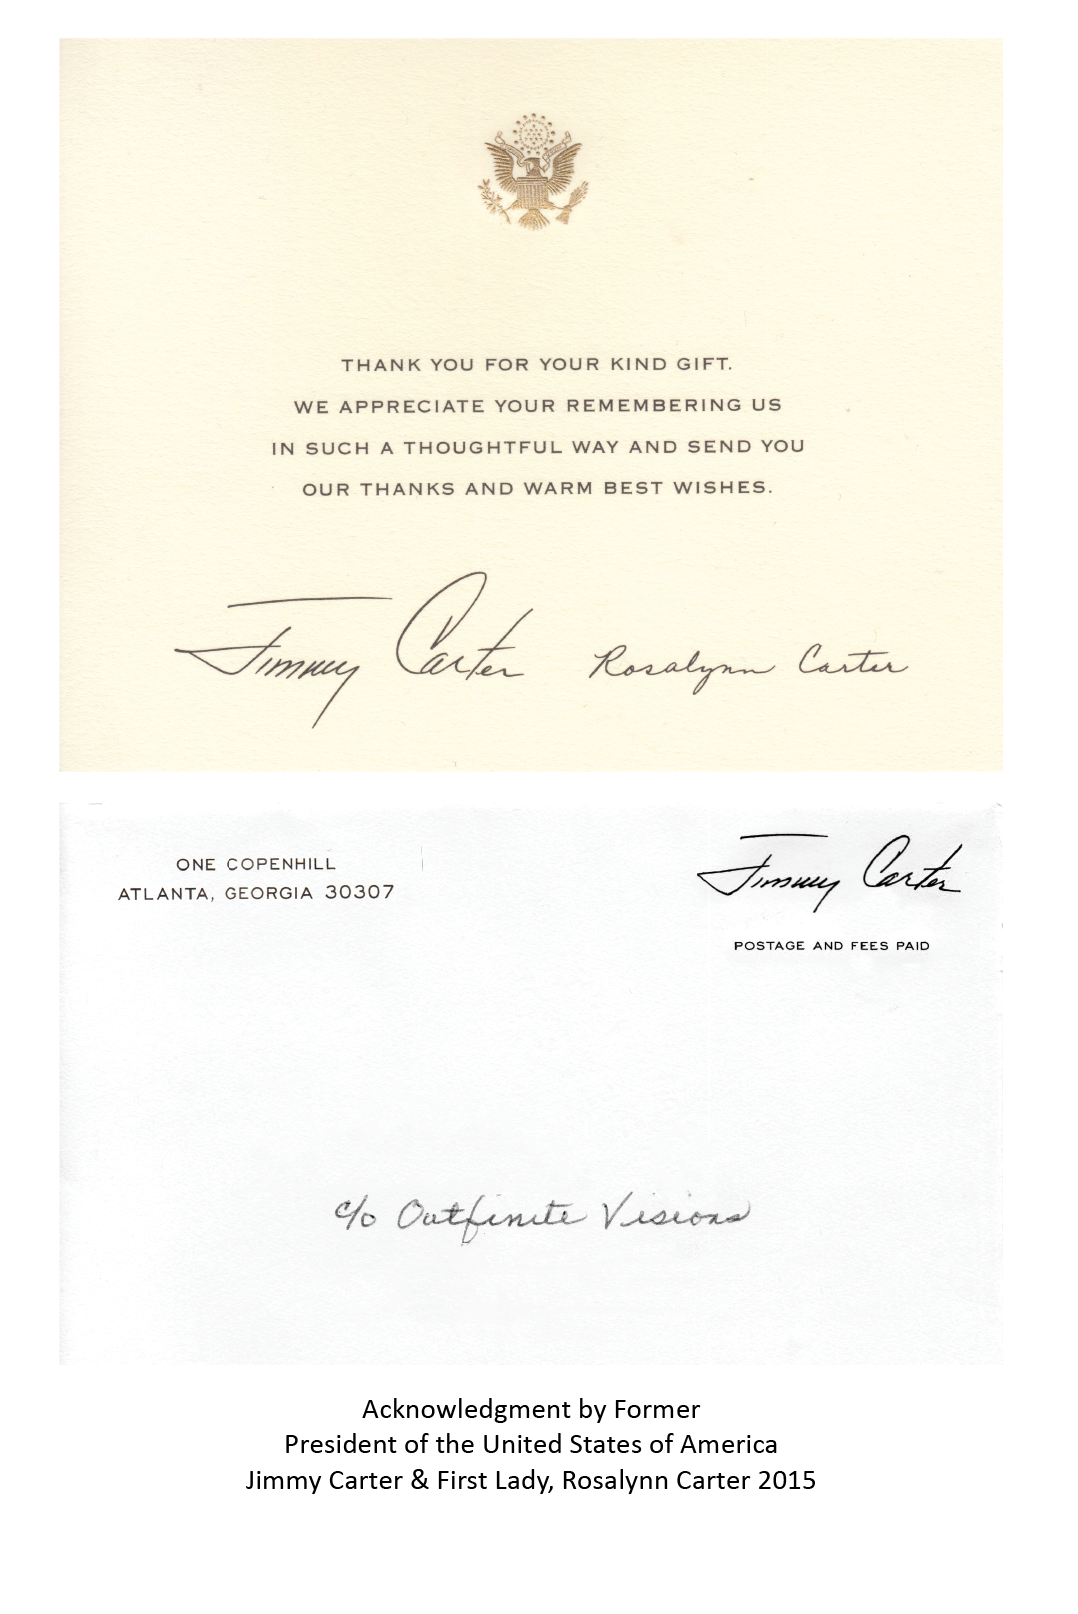 Letter from Former United States President Jimmy Carter